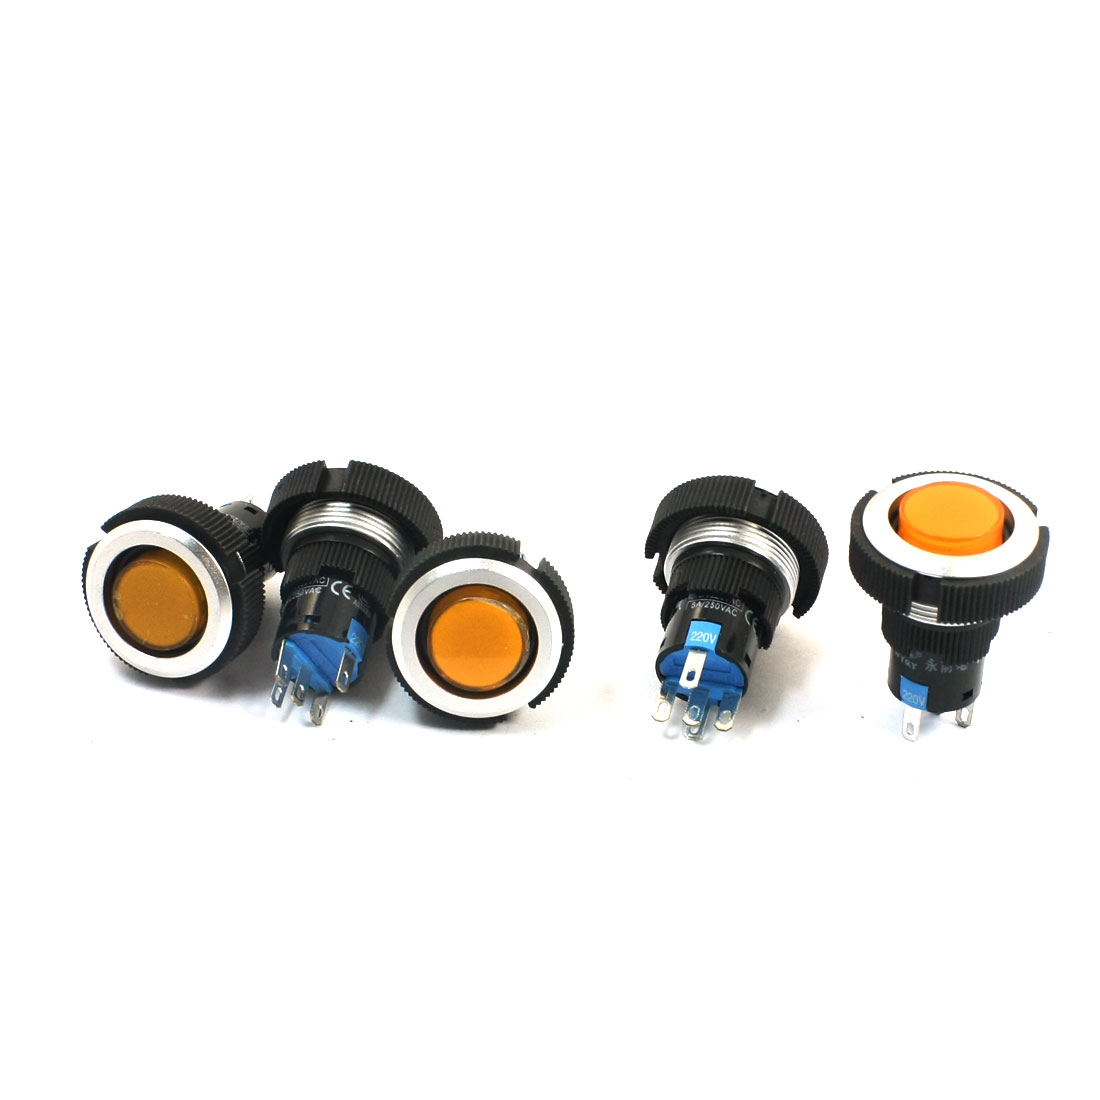 220V 22mm Thread Panel Mount SPDT 5Pin Momentary Control Orange Pilot Lamp Push Button Switch 5Pcs